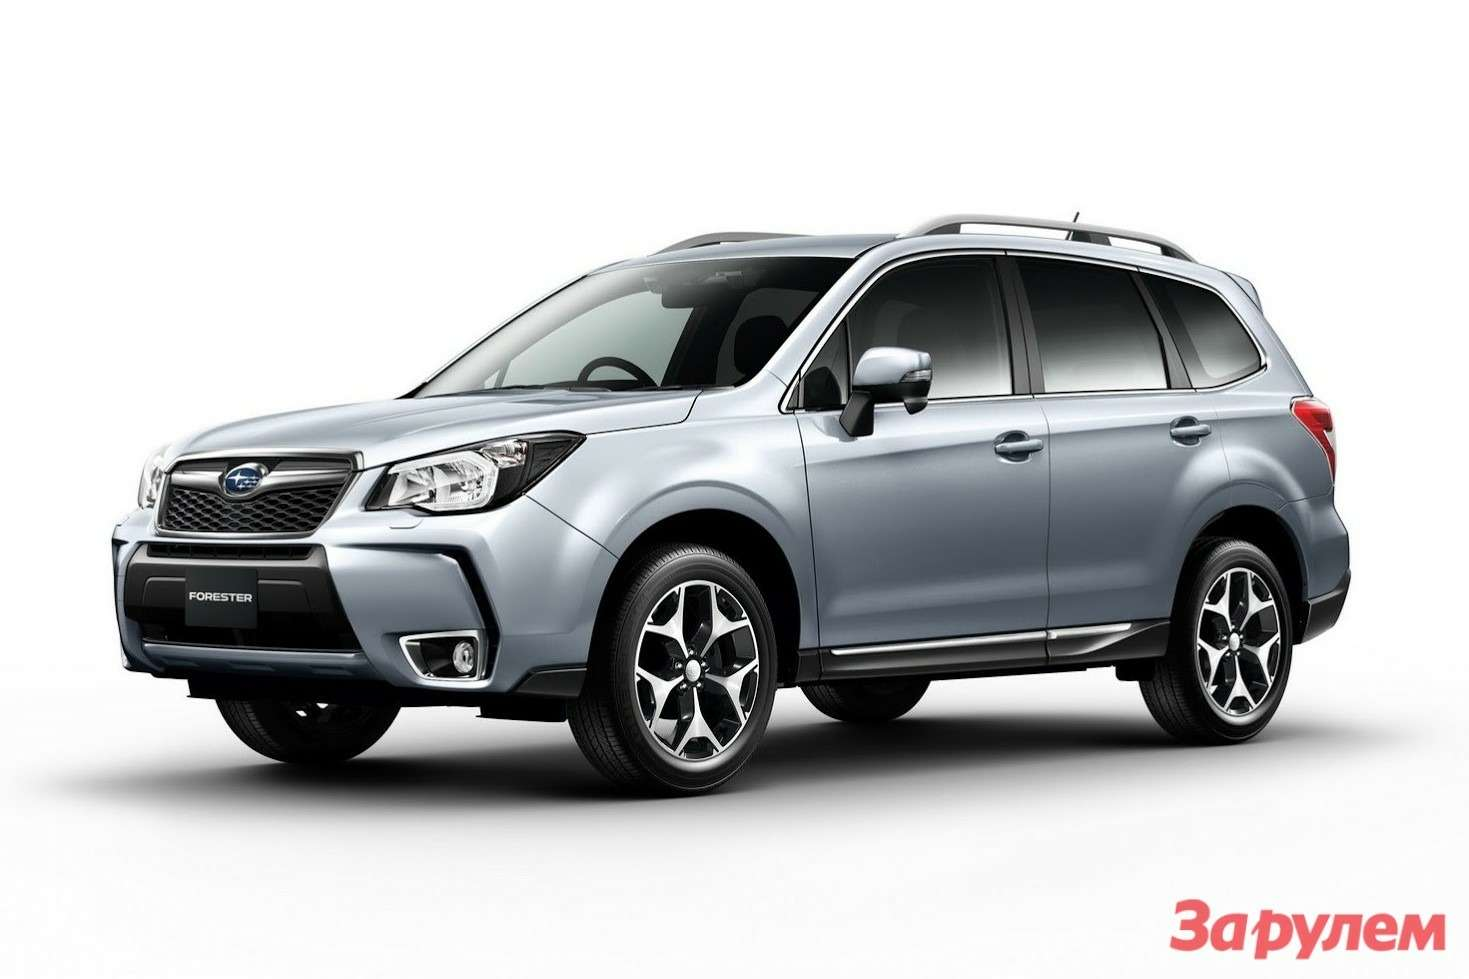 NewSubaru Forester side-front view 3